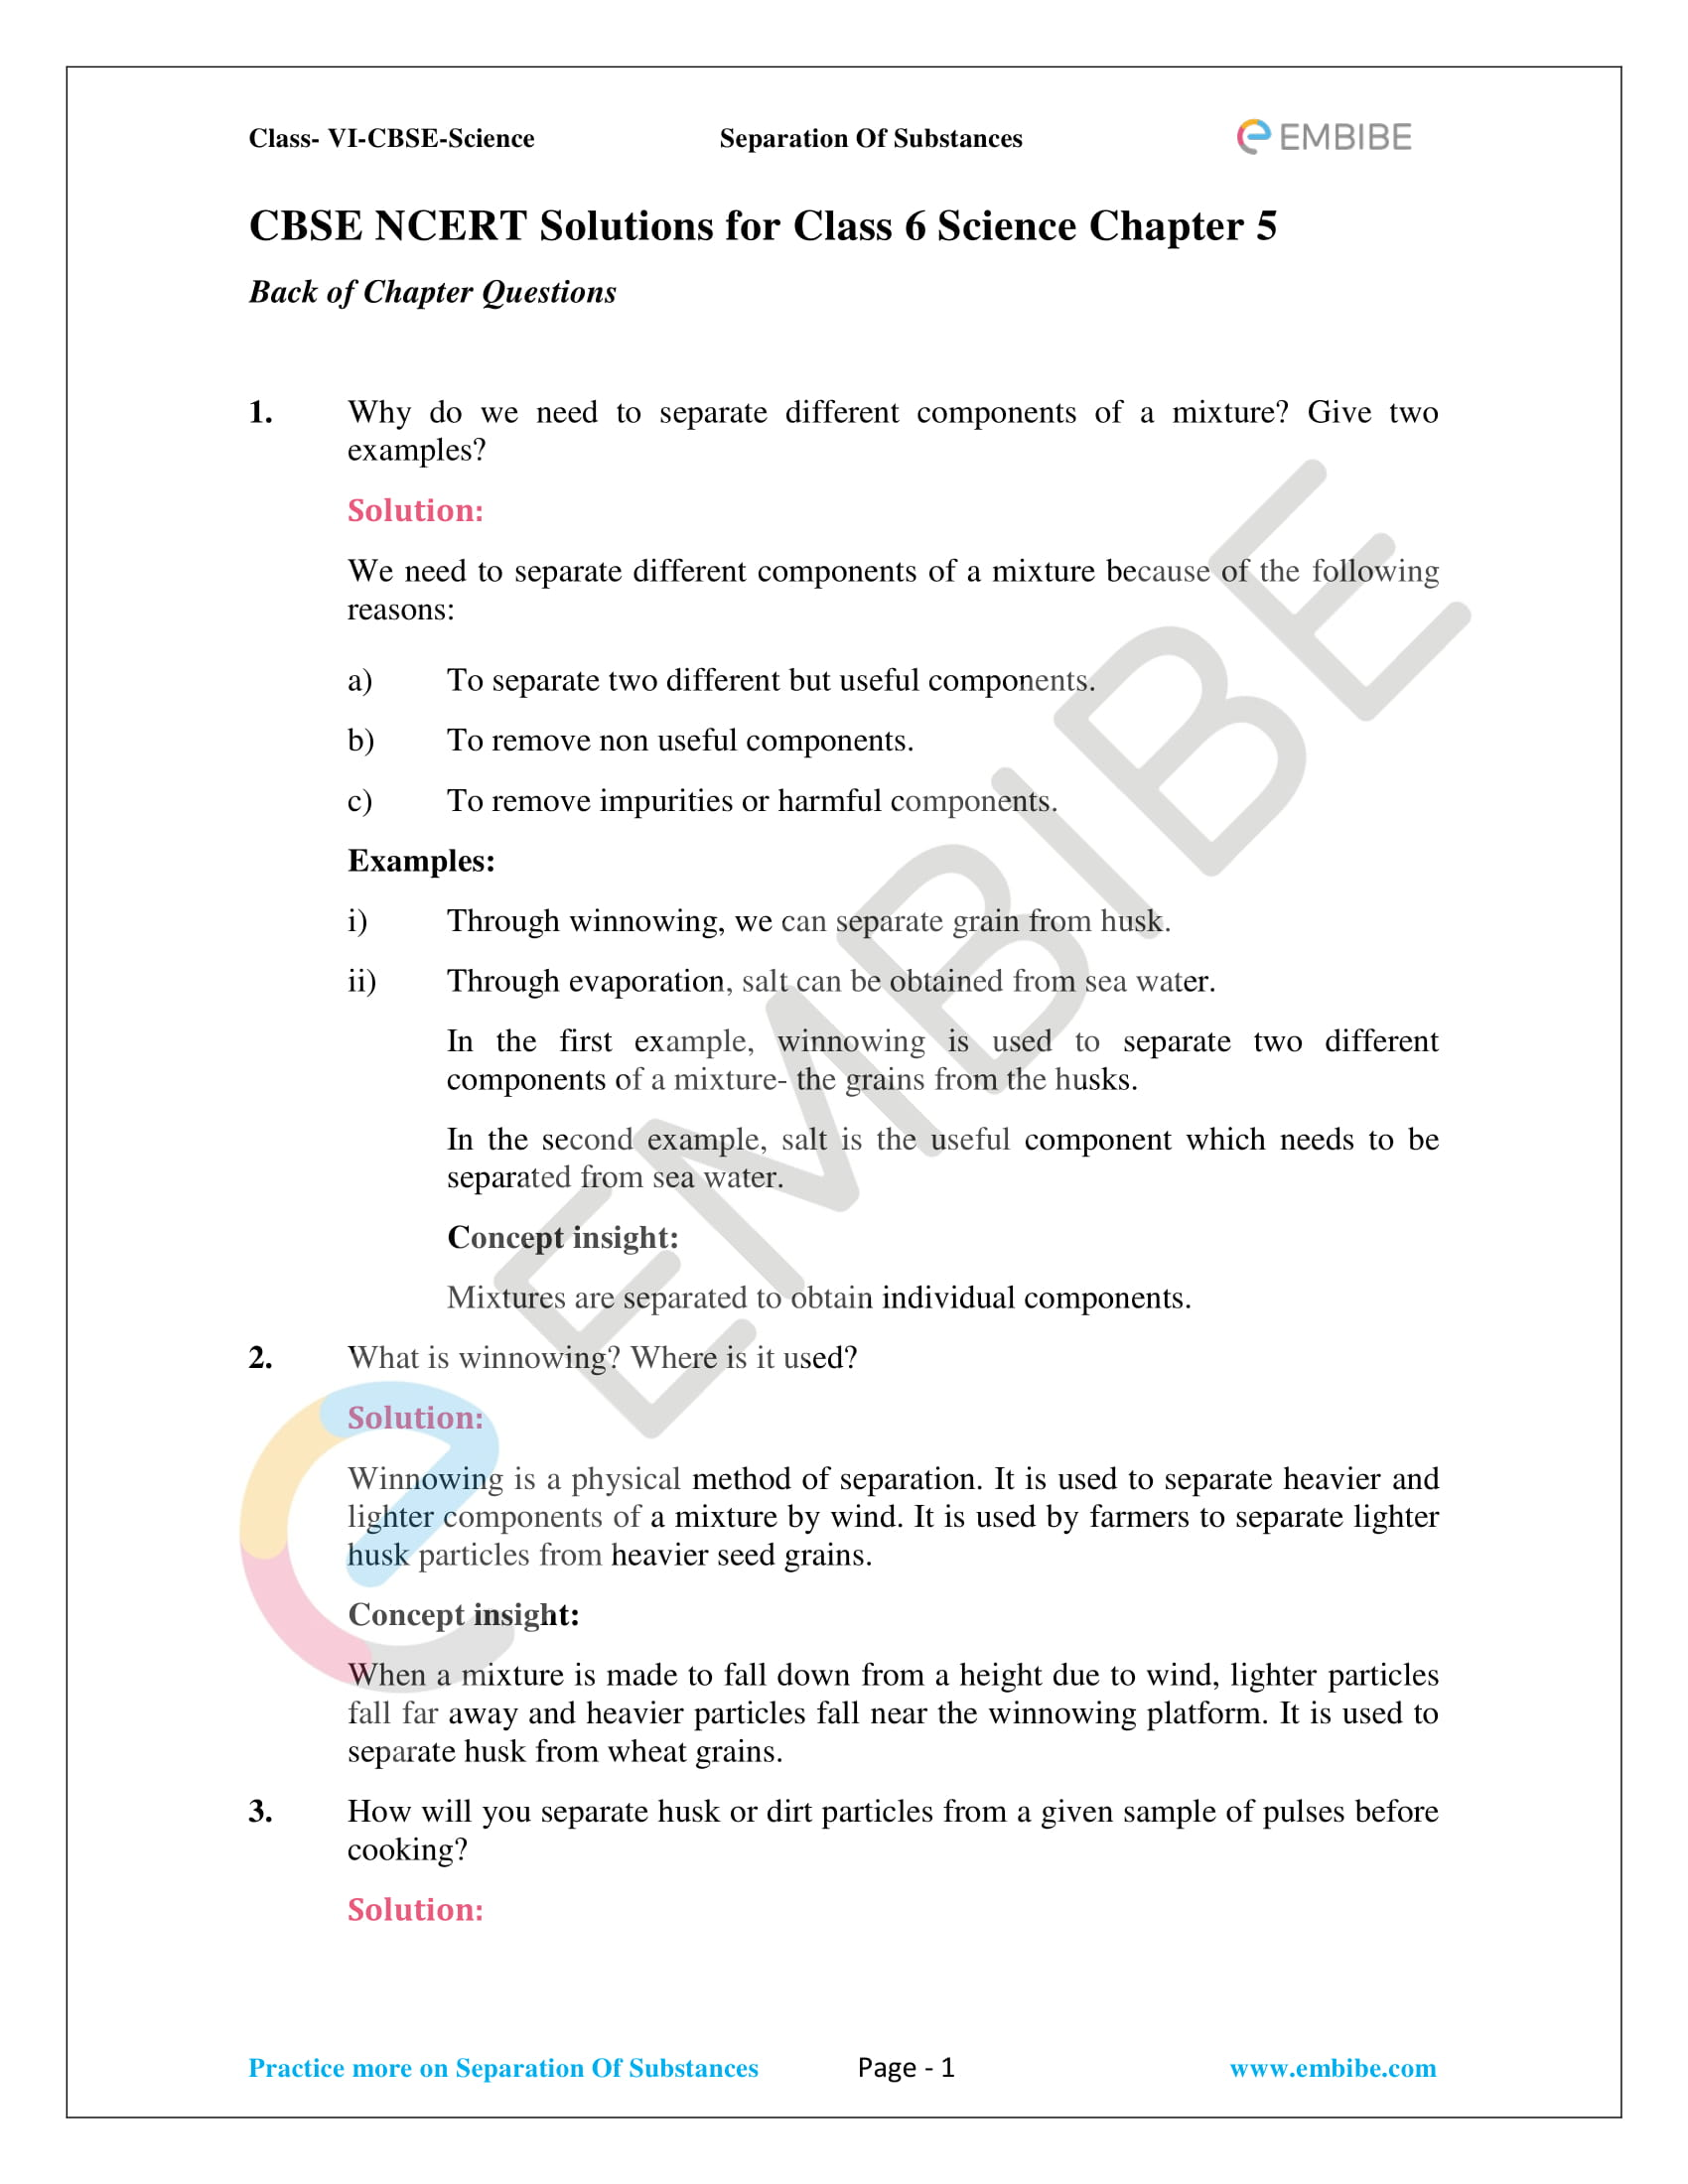 NCERT Solutions For Class 6 Science Chapter 5 - Separation Of Substances - 1